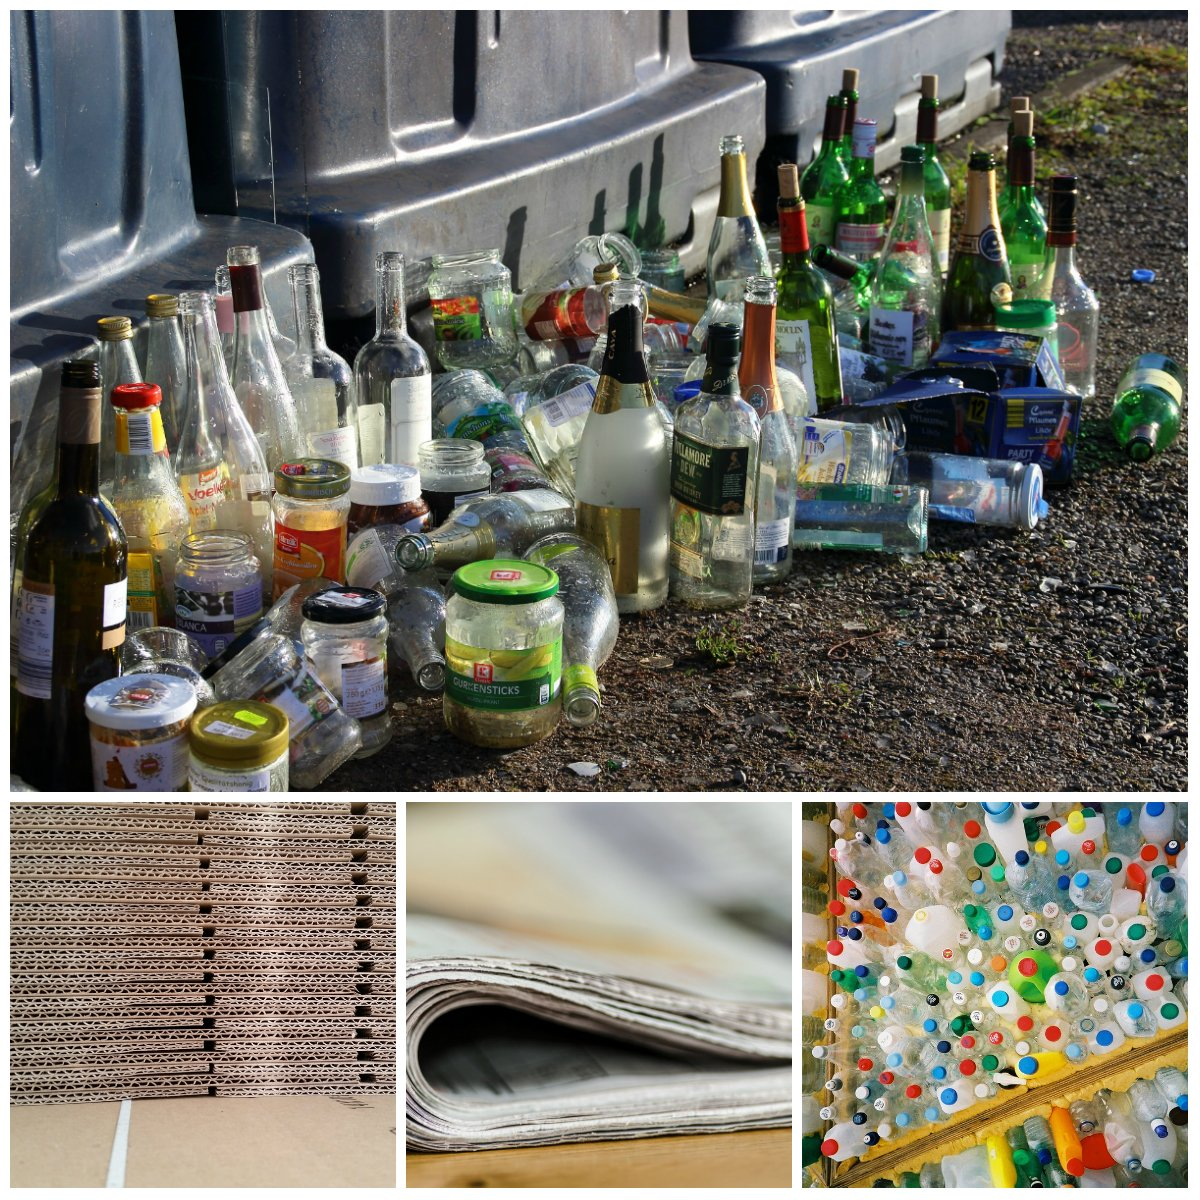 Glass Flattened Cardboard Paper And Plastic Bottles Are Among The Items That Can Be